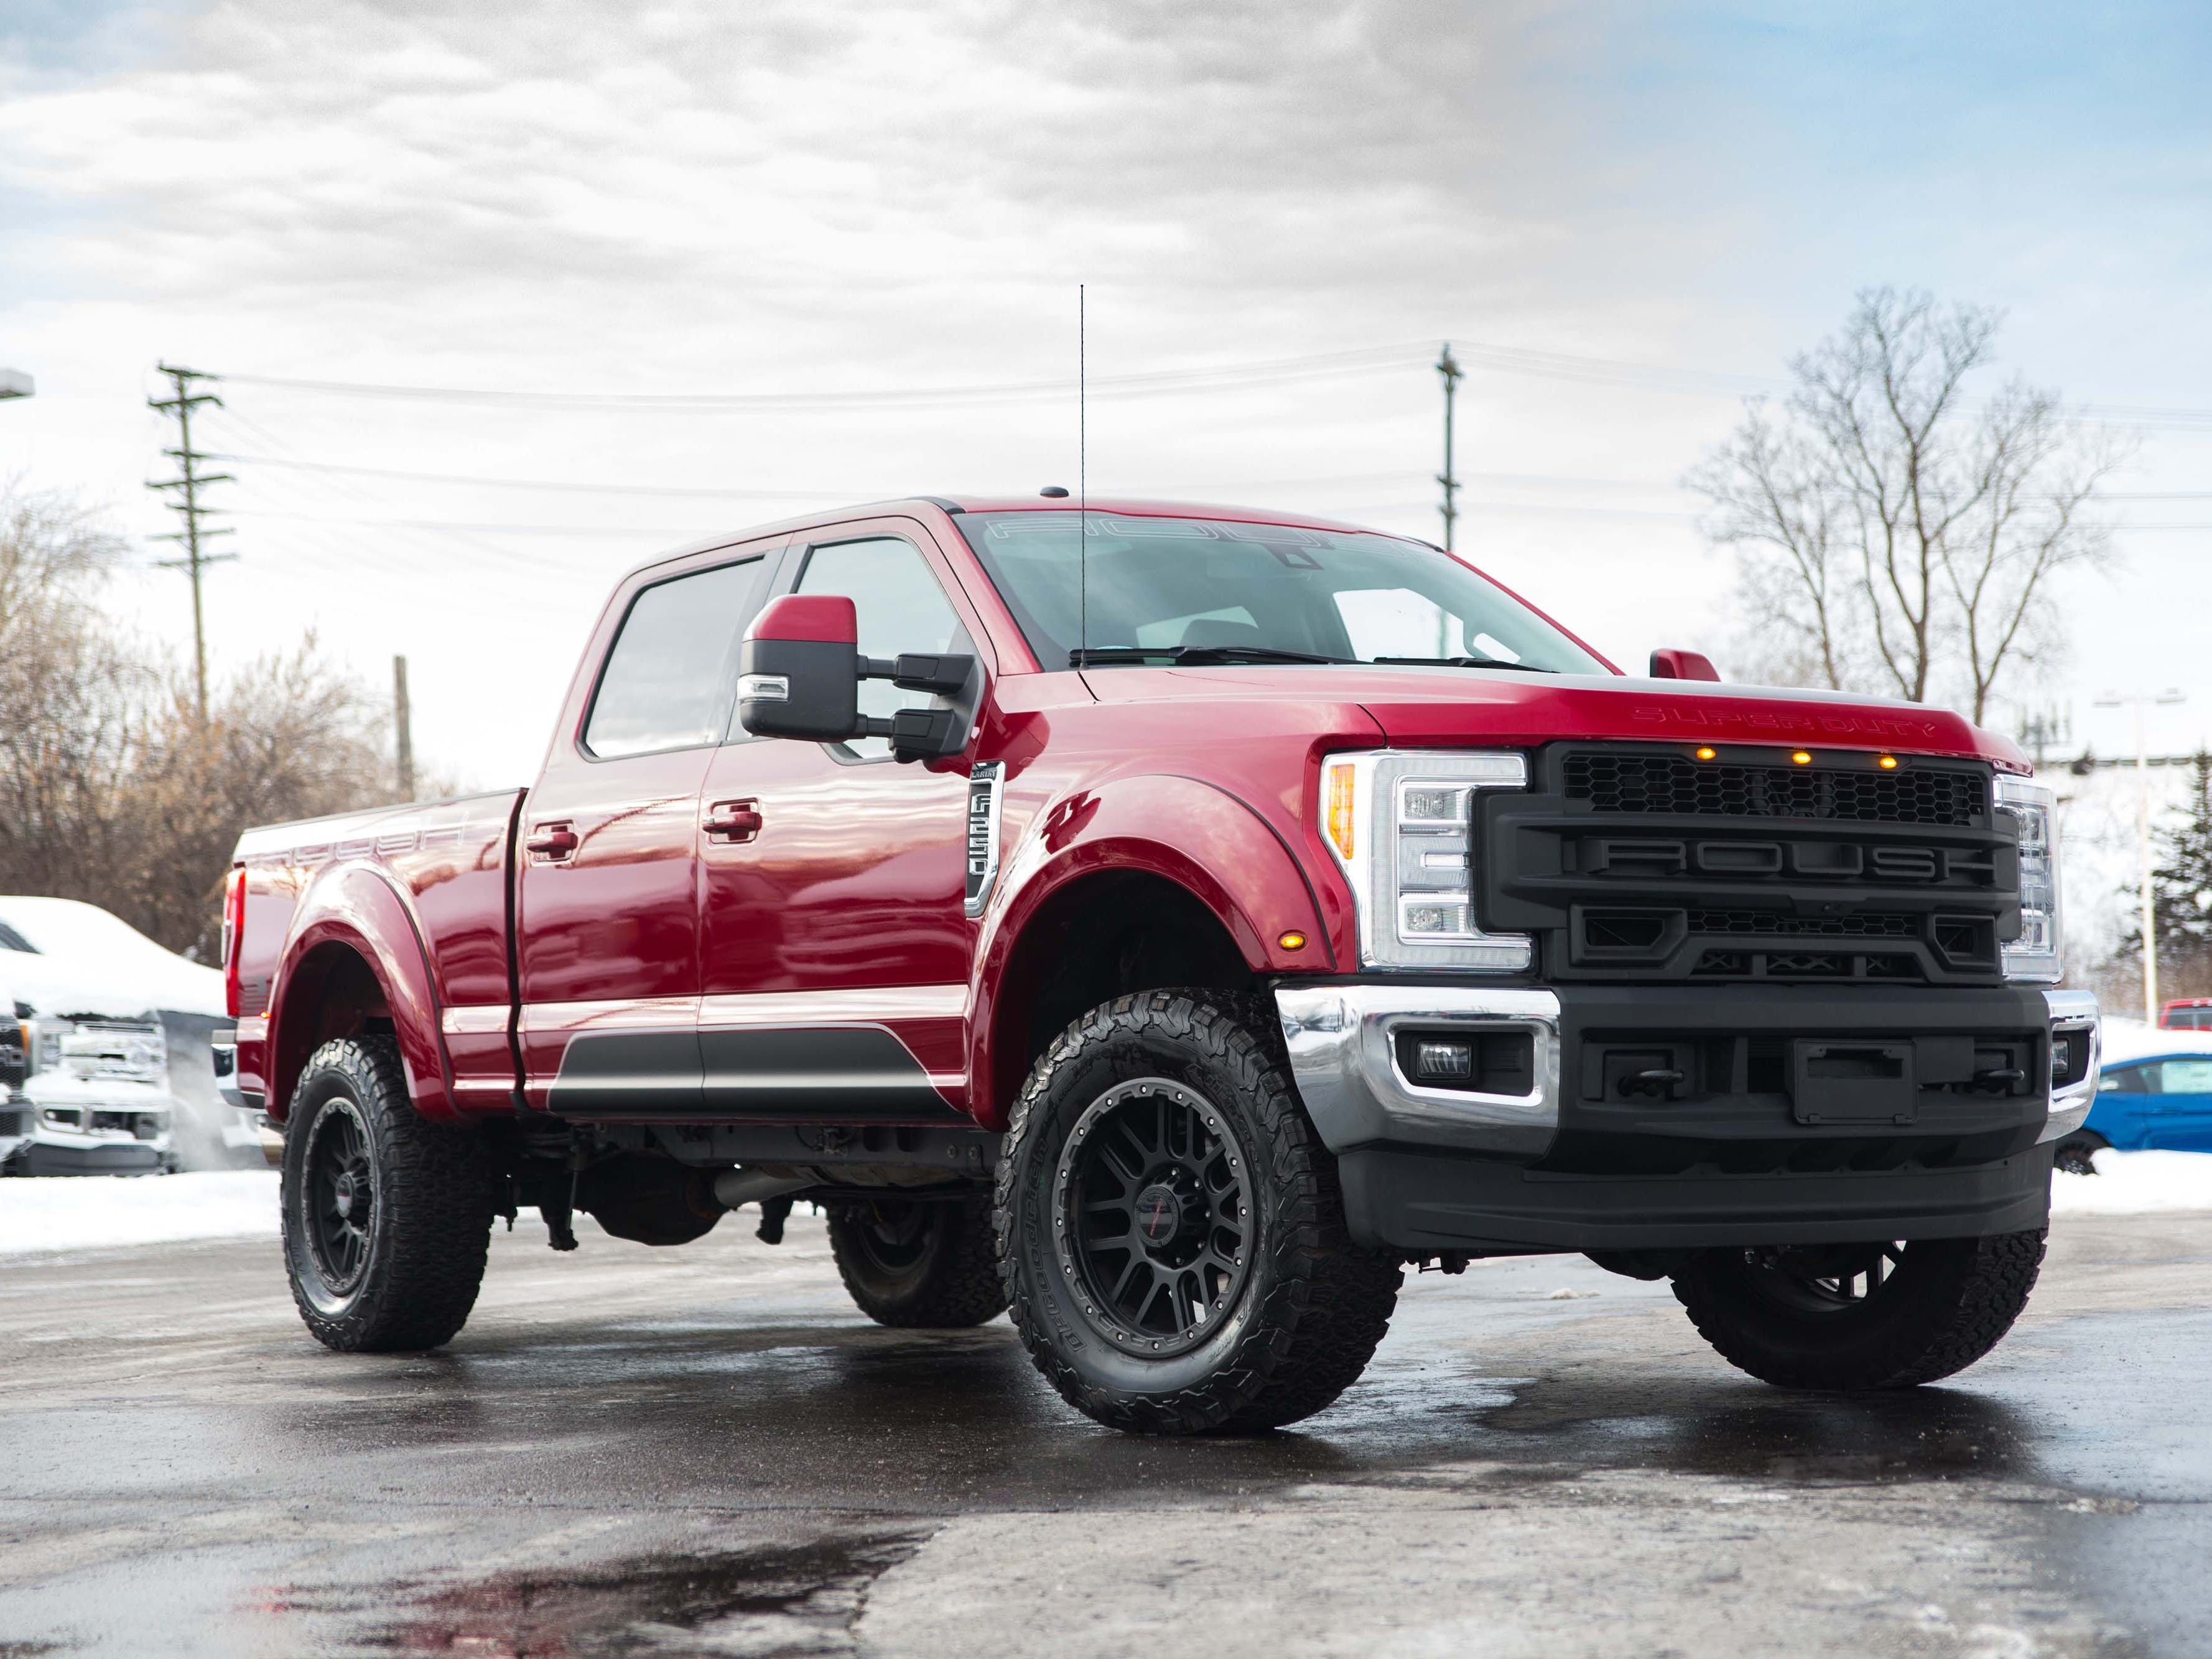 The macho truck craze has also spawned pickup mutants like the Rough Ford F-250 Super Duty - an intimidating truck that can be ordered with Roush mods through Ford dealership.